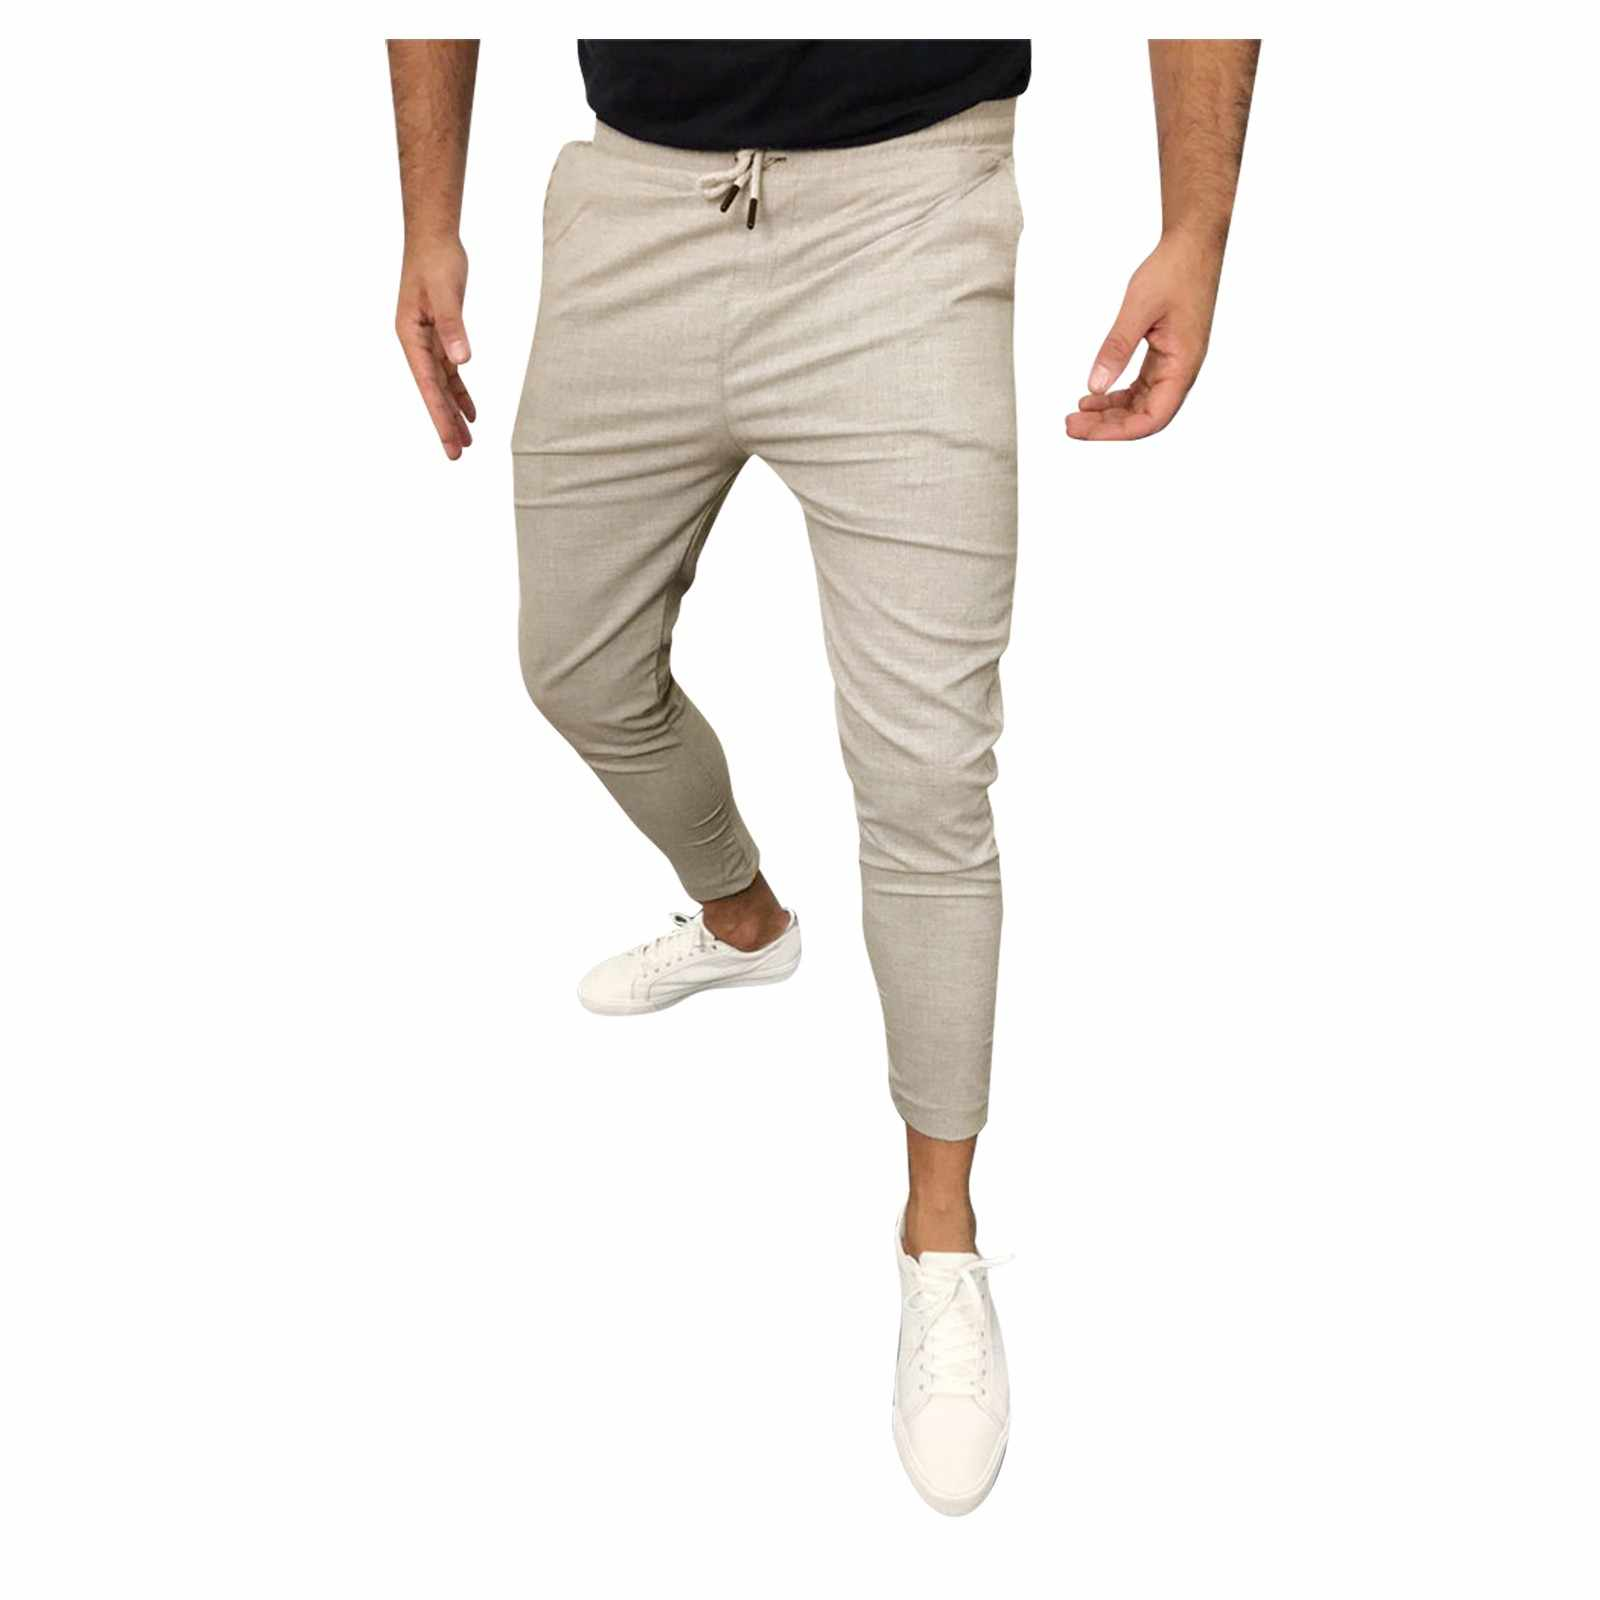 Mens Fashion Pants Solid Color Track Pants Hip Streetwear Sport Sweatpants 5xl Pants Pantalones Hombre Joggers Trouser Harem Pants Aliexpress